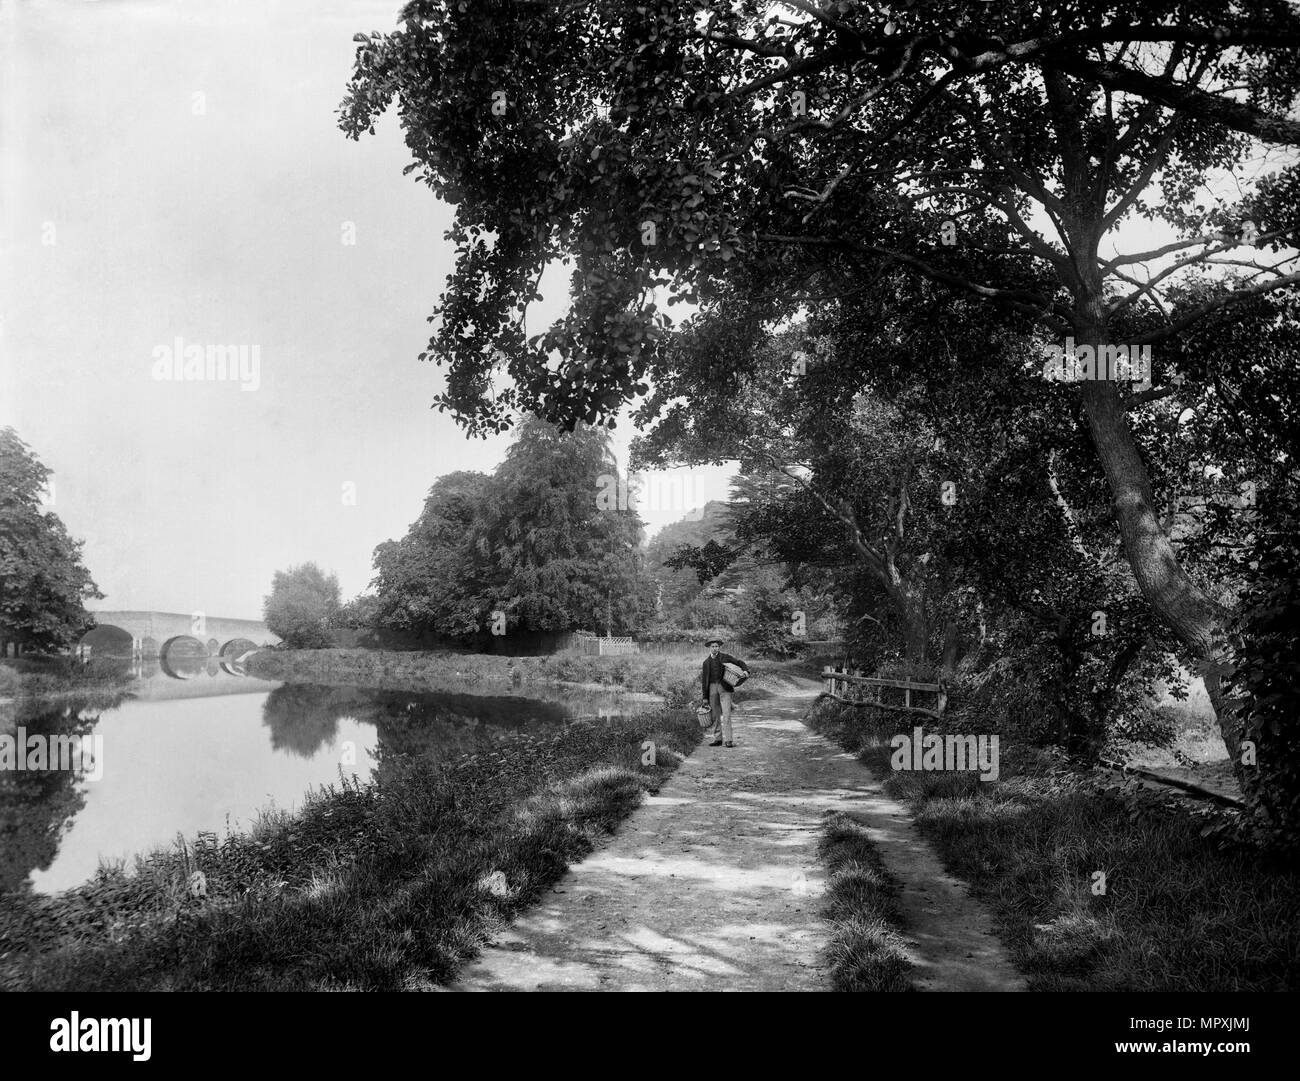 Towpath beside the River Thames, near Sonning, Berkshire, 1885. Artist: Henry Taunt. - Stock Image